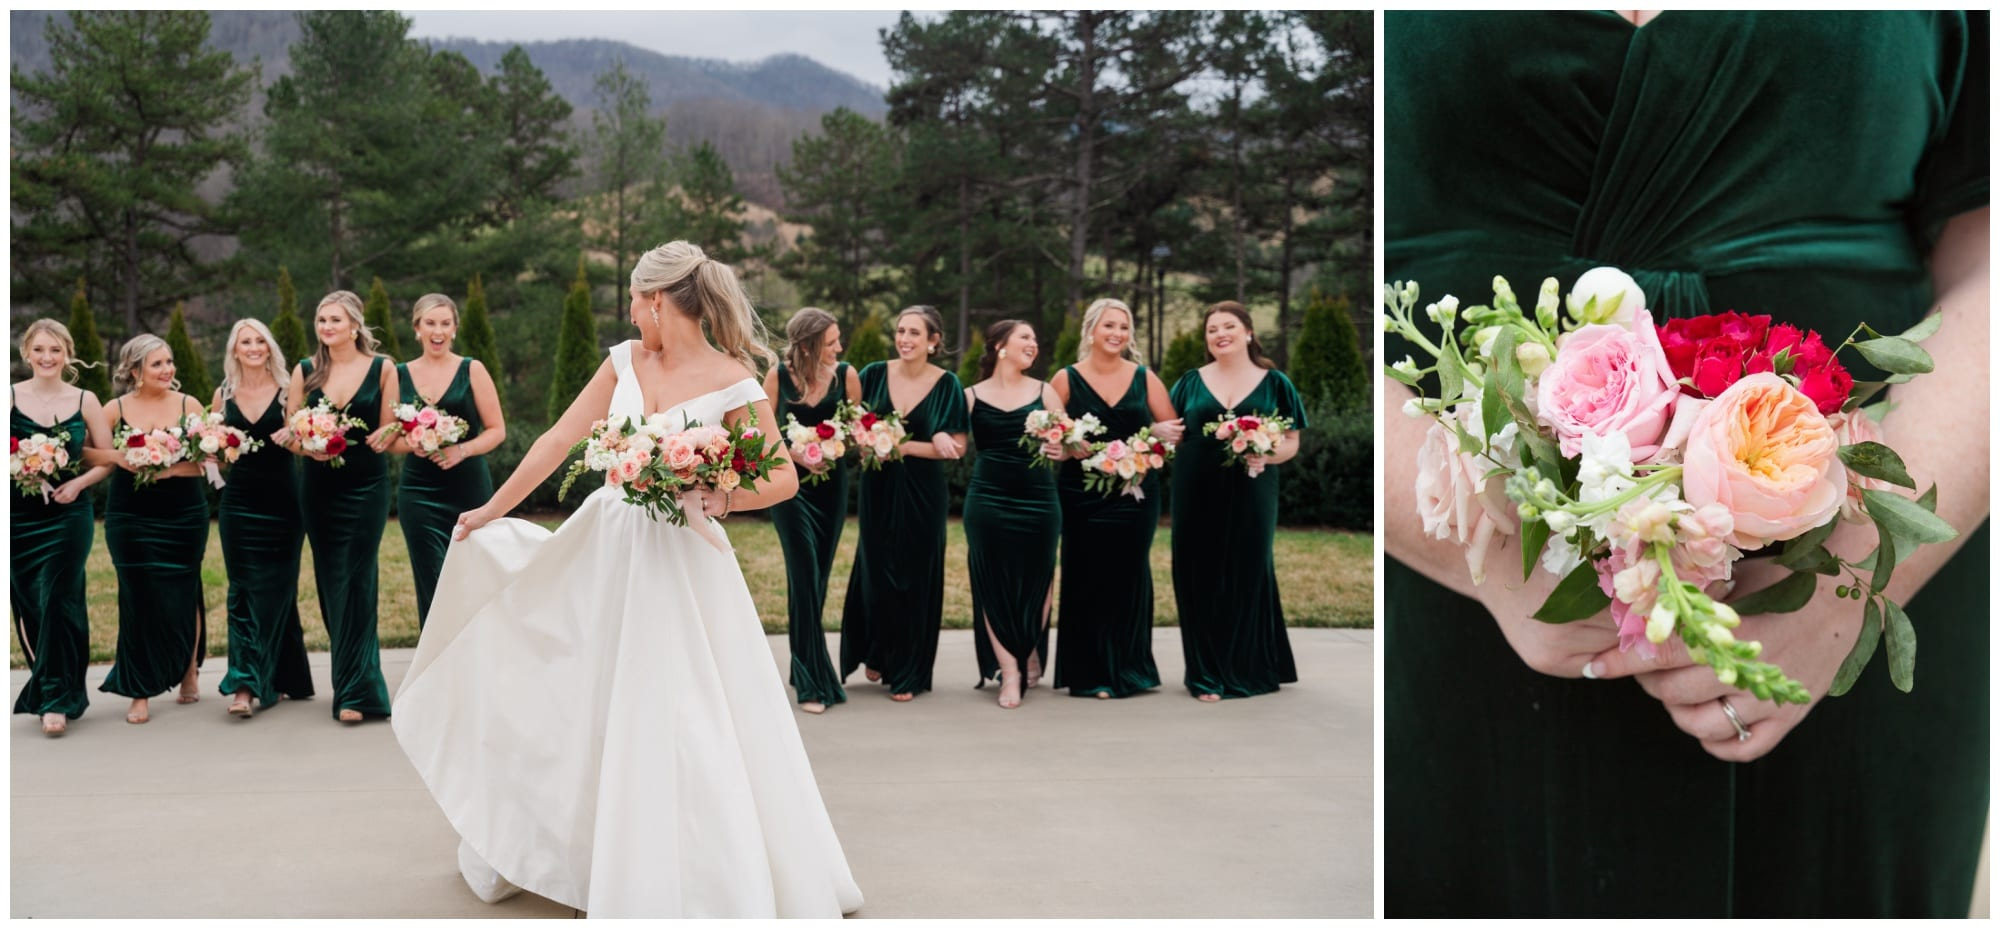 Bridesmaids holding their bouquets and laughing